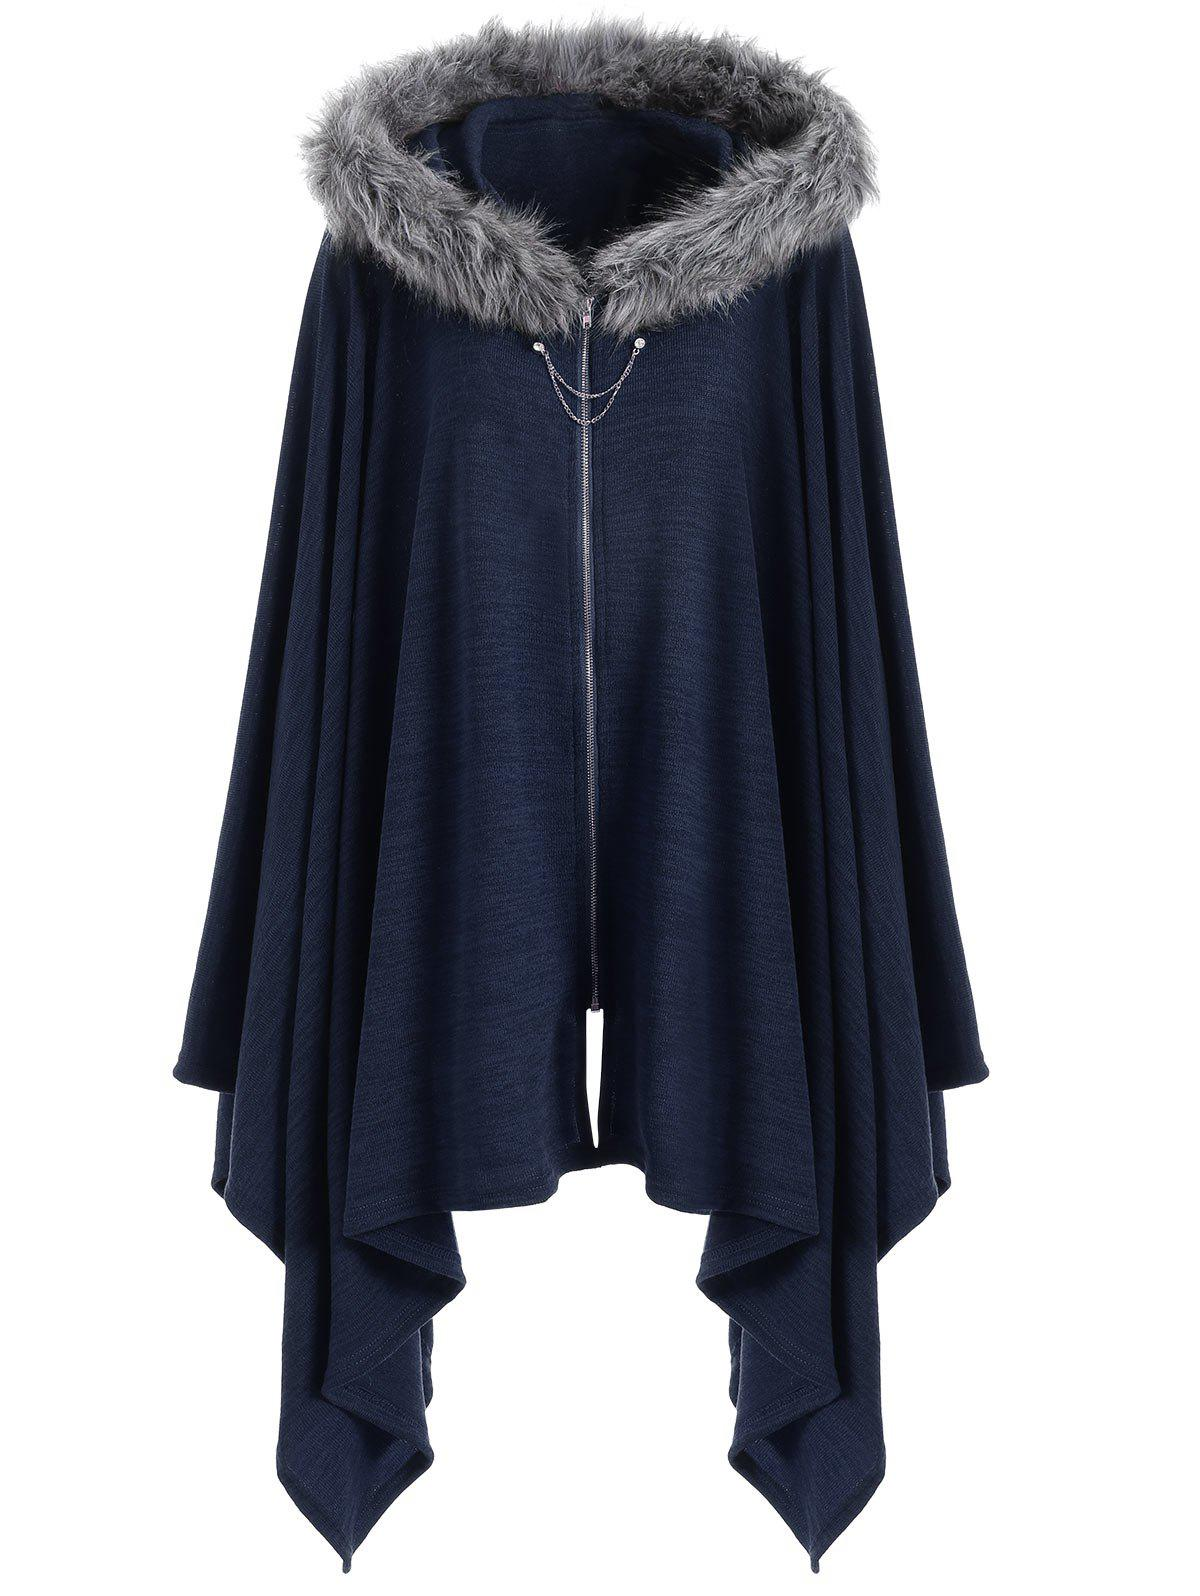 Online Faux Fur Insert Plus Size Asymmetric Cape Coat